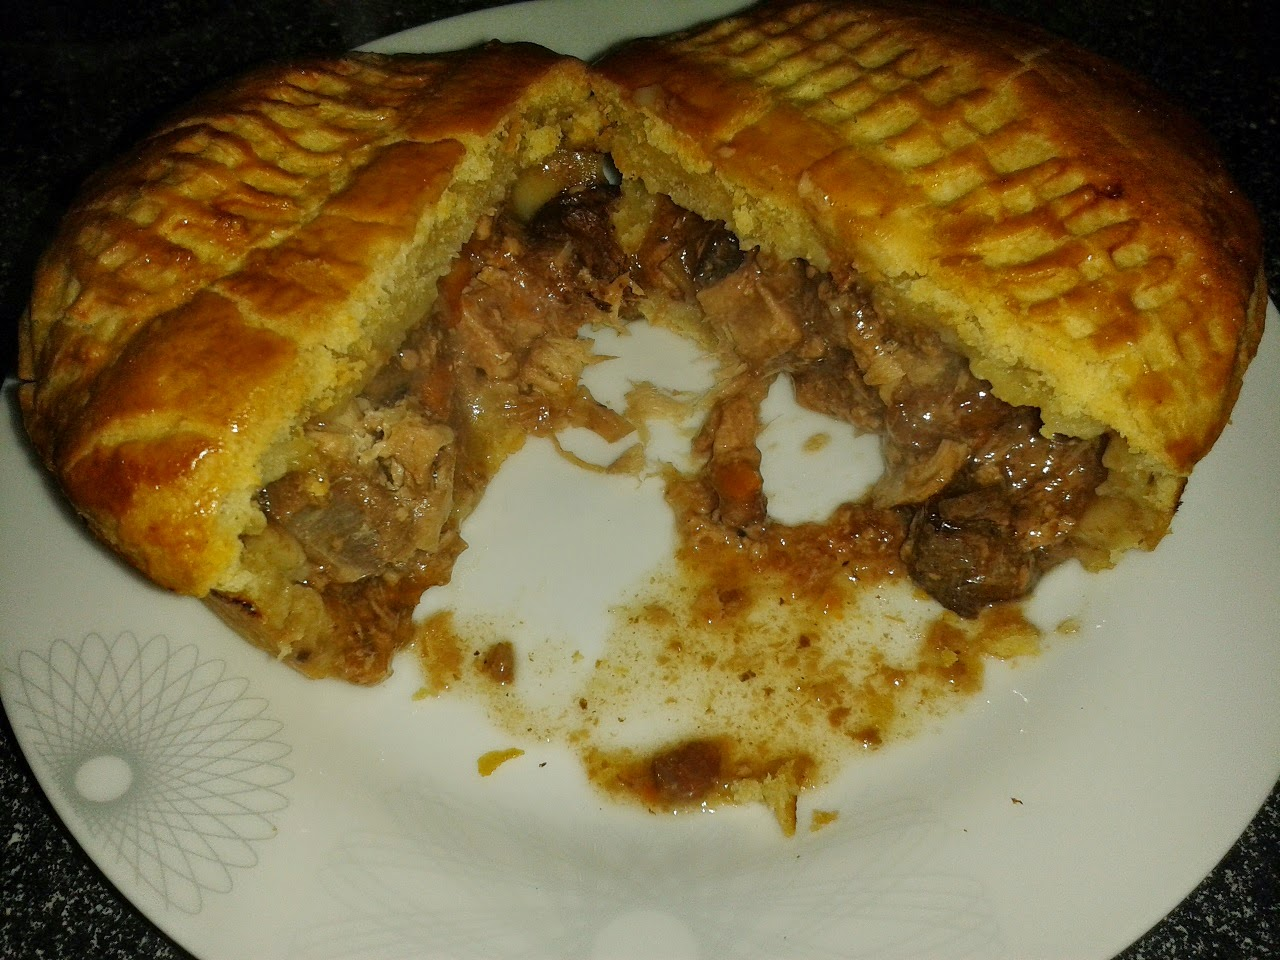 Roadkill Pie